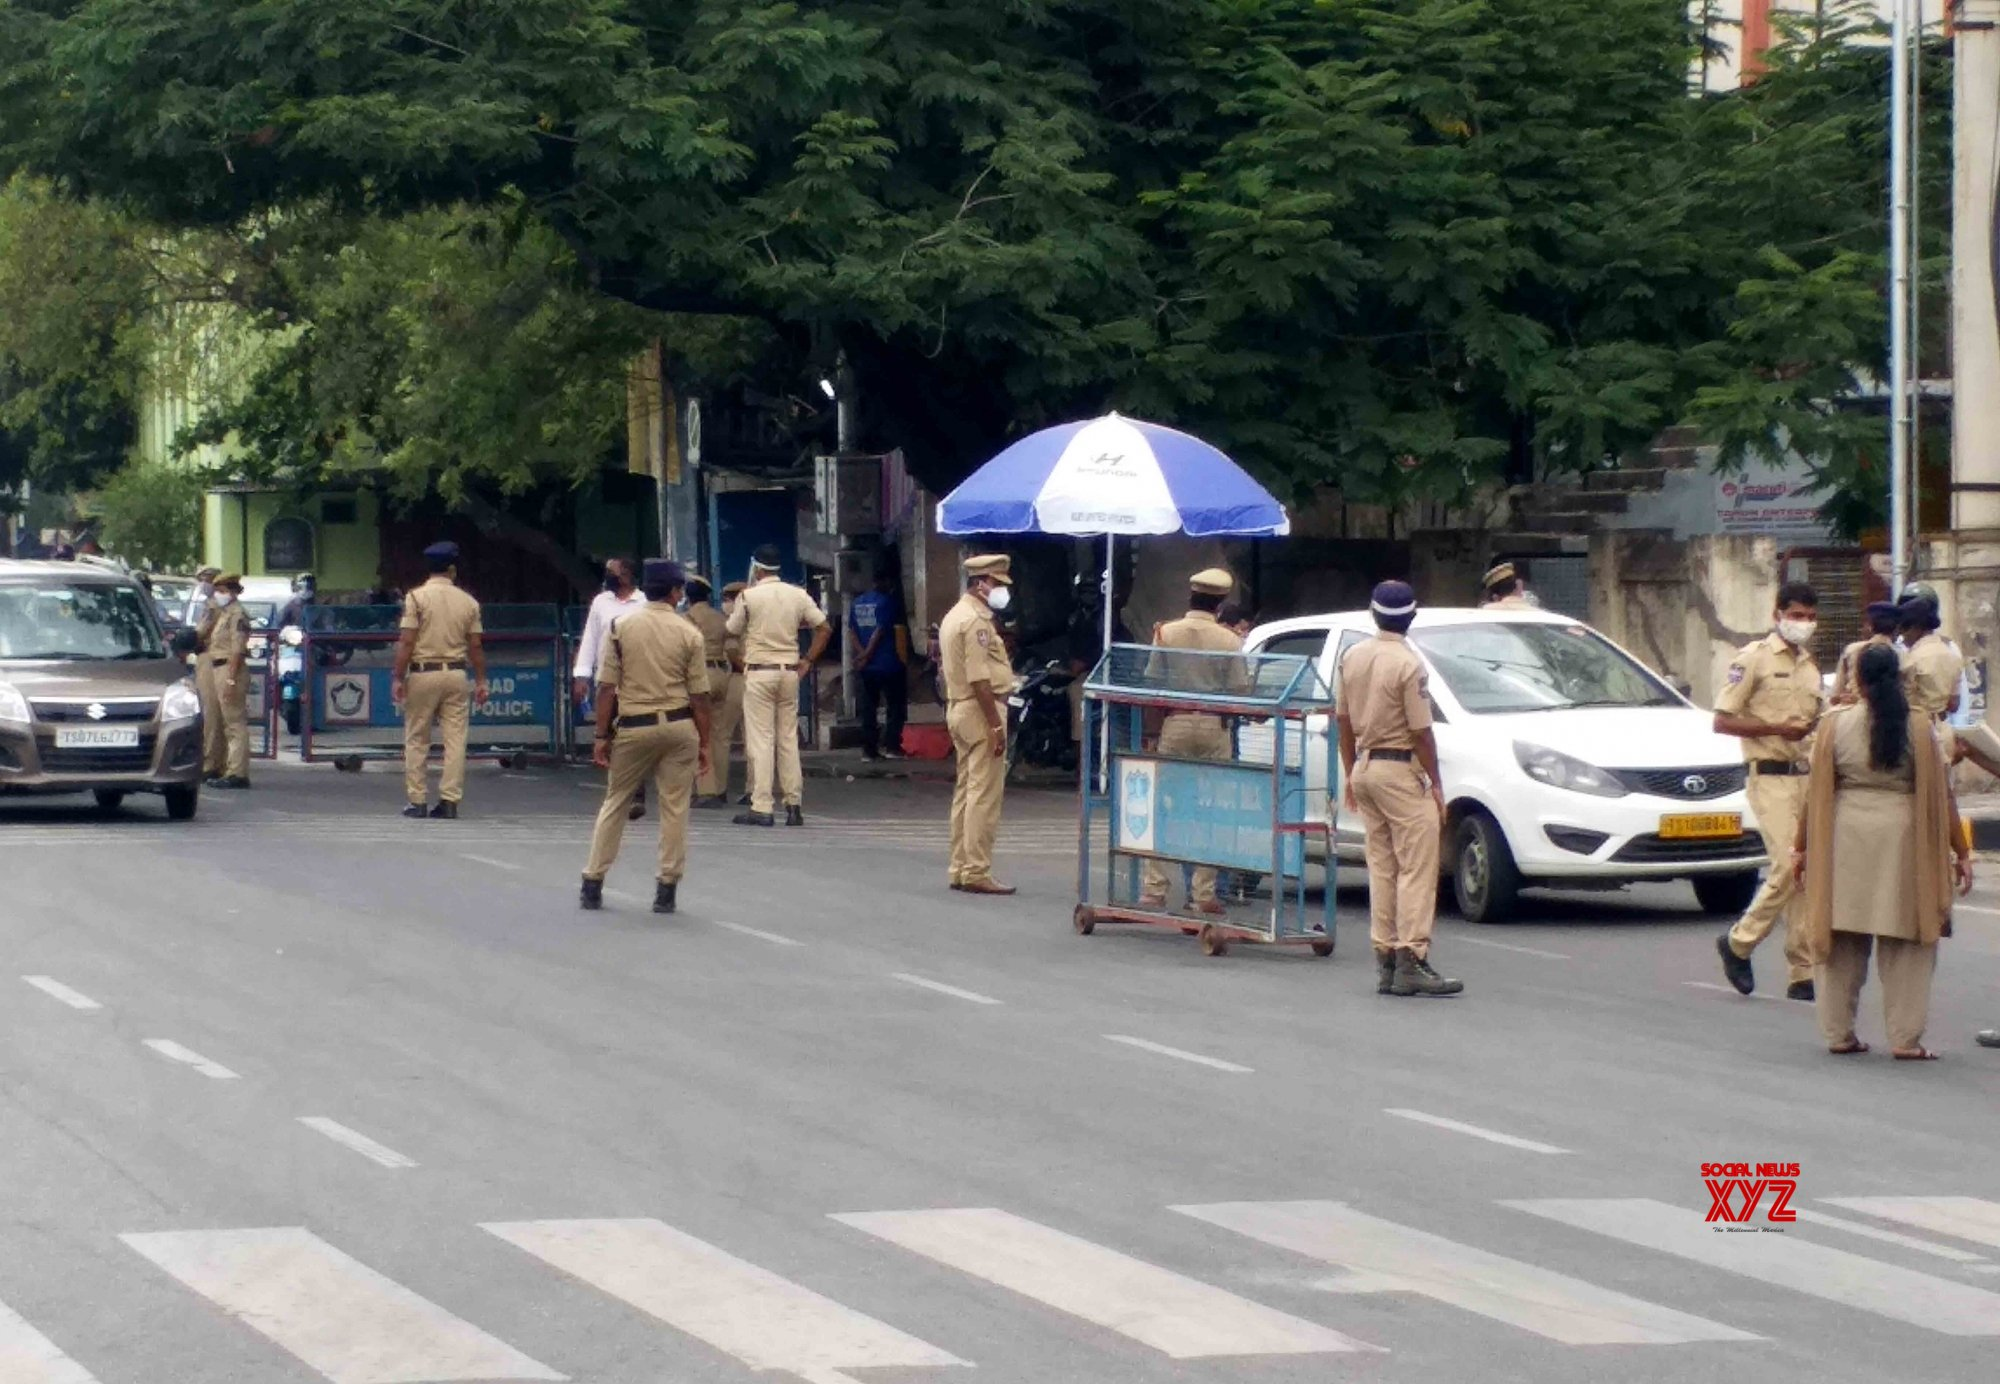 Hyderabad : Police stick vehicle checking - again - after Lockdown is - extended of - relaxation hours - in Hyderabad. #Gallery